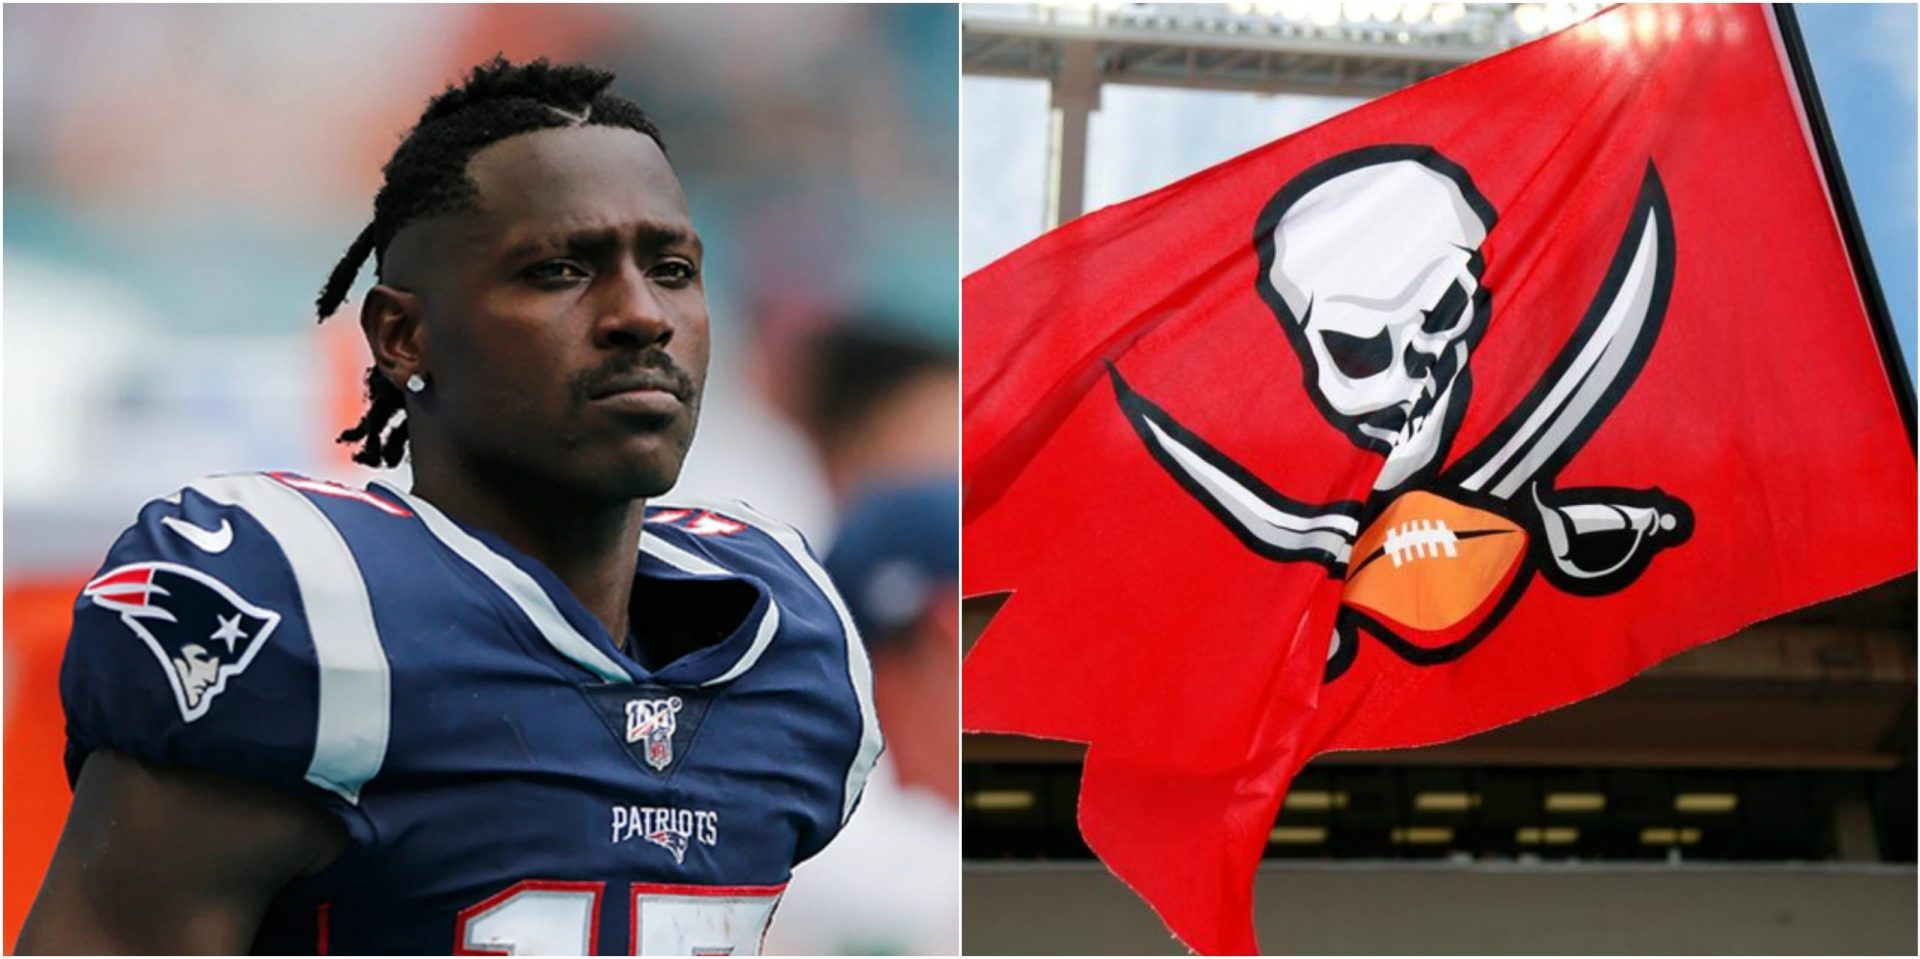 Antonio Brown reportedly agrees a 1-year contract with Tampa Bay Buccaneers - THE SPORTS ROOM